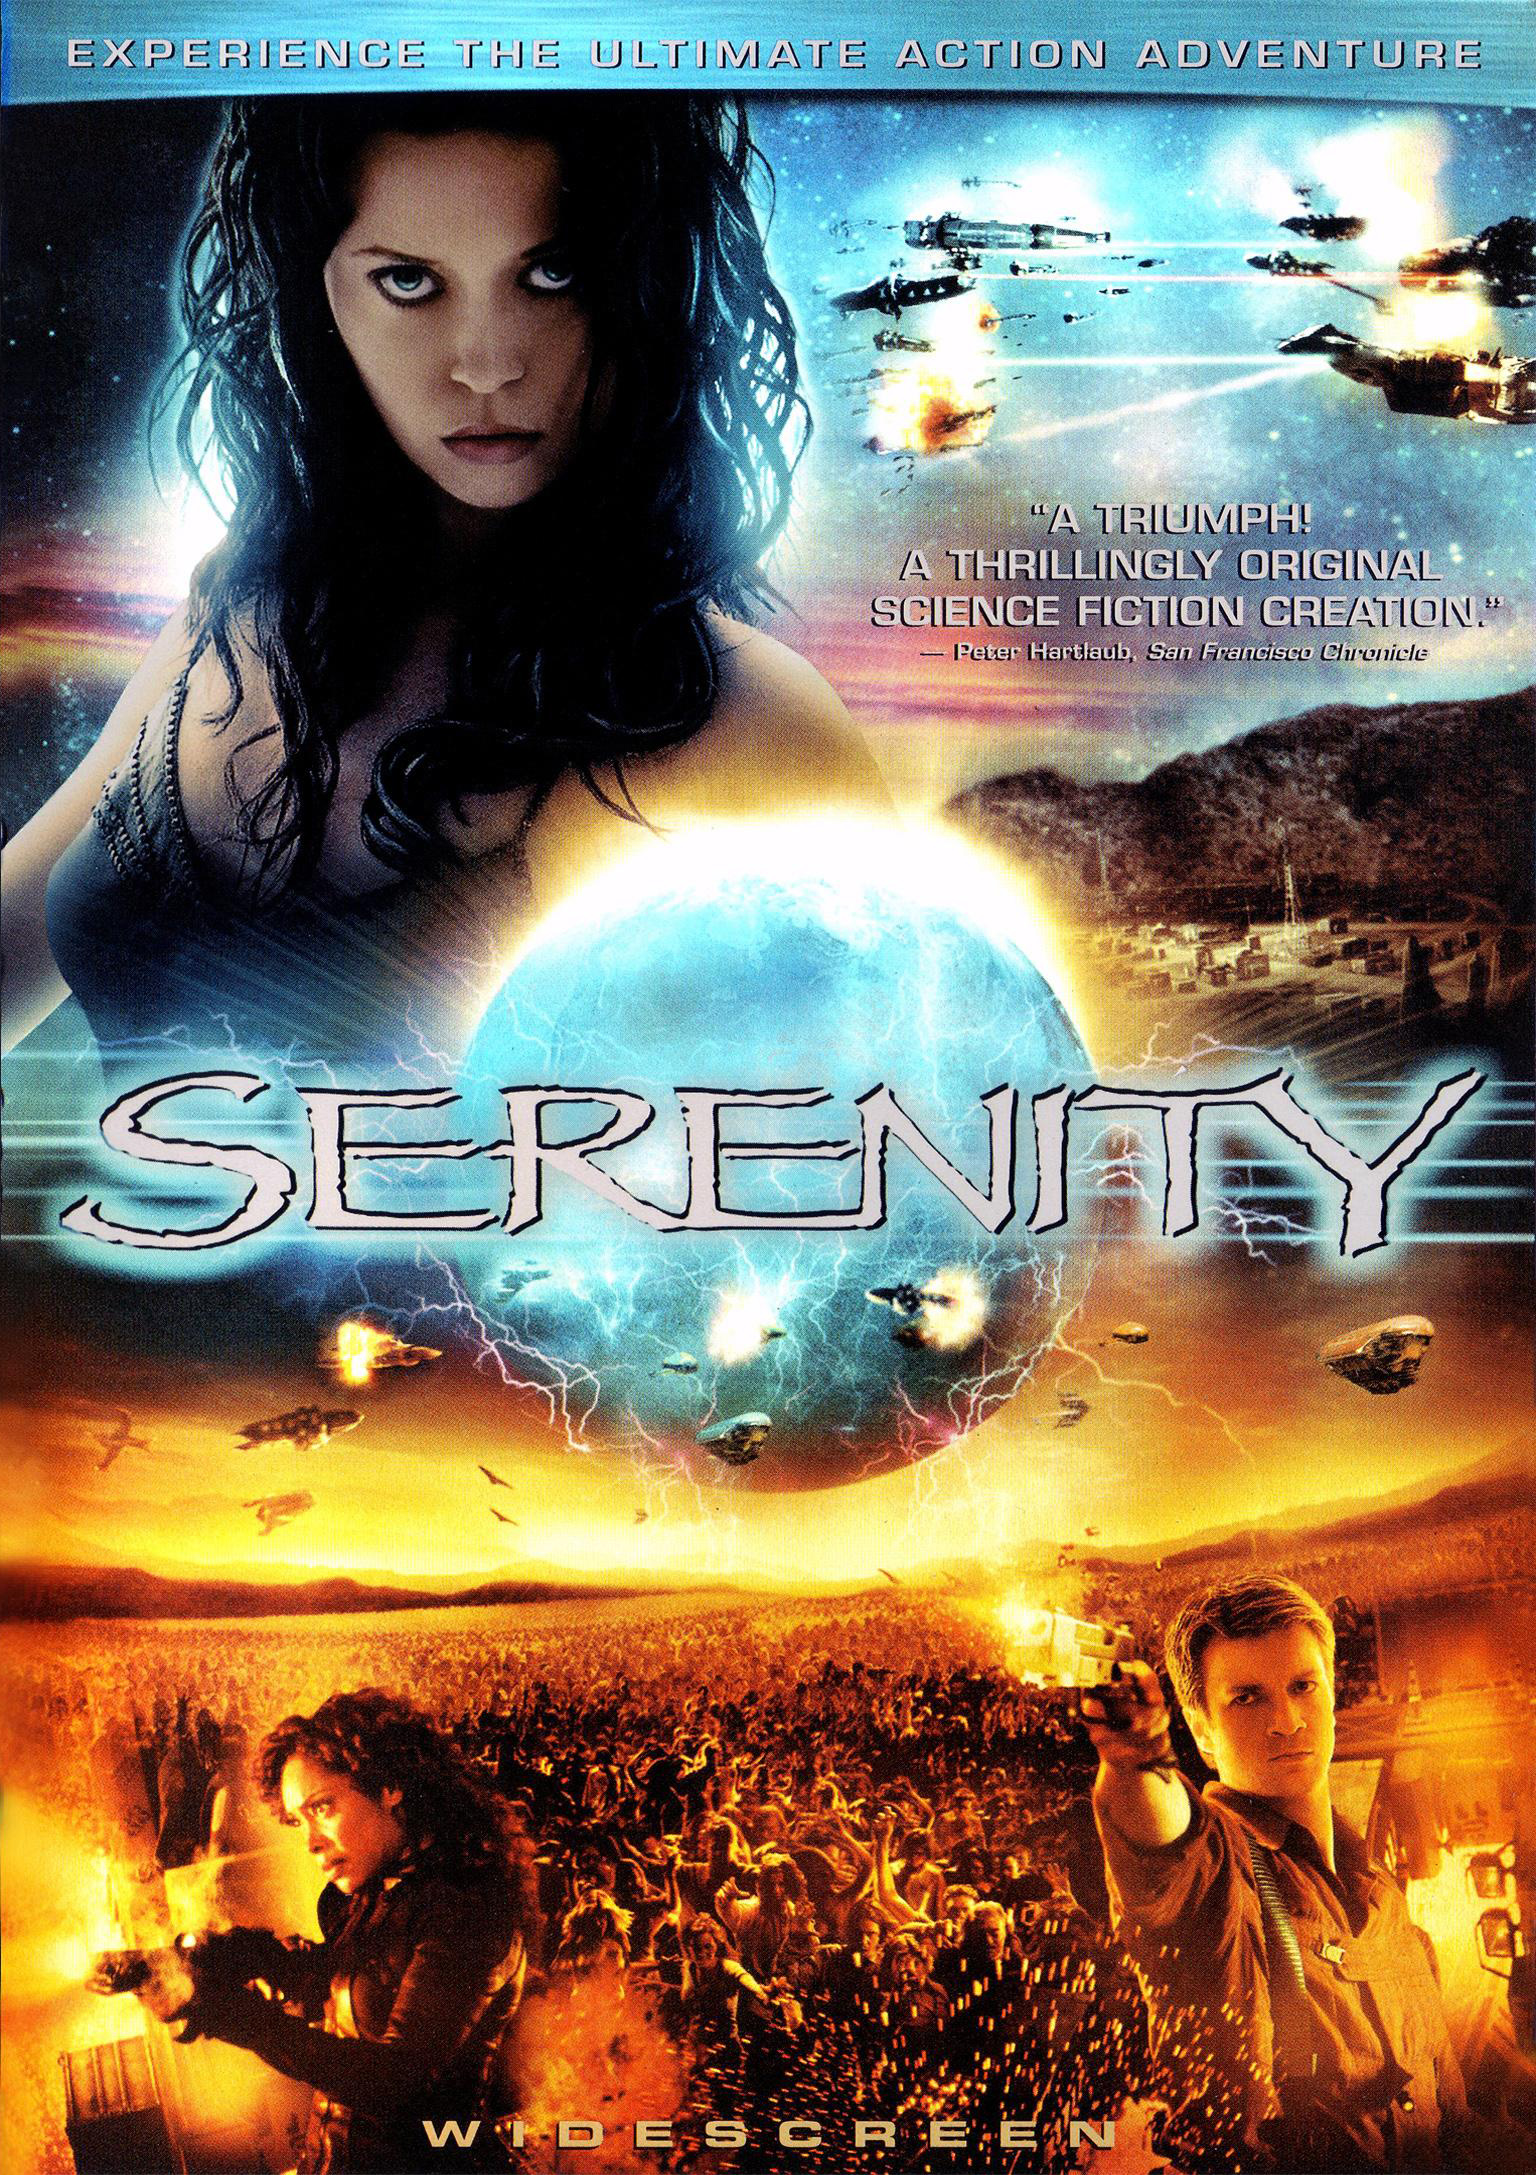 serenity dvd movie poster film movies fugitive television guide blu ray inspired summer french glau anythinklibraries